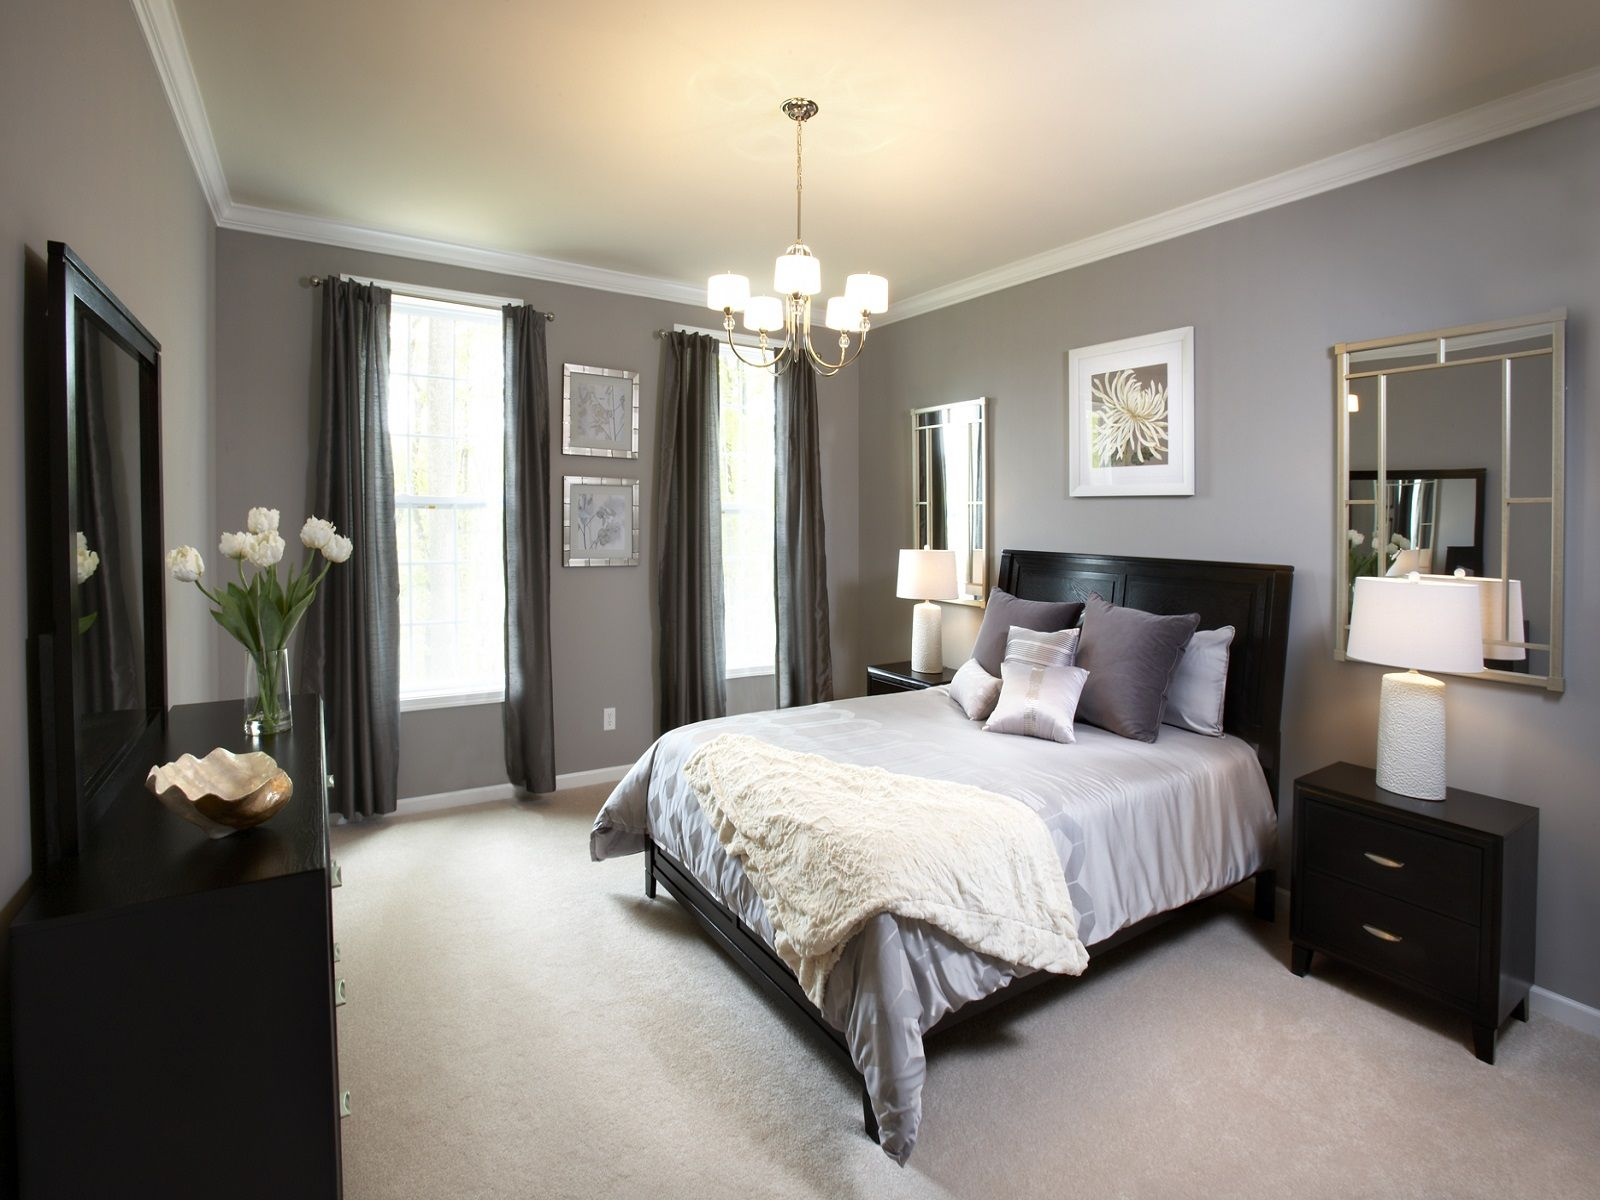 Black and white bedrooms with color accents - Awesome Bedroom Shade Chandelier Over White Bedding Ideas With Black Wooden Base Bed Frames As Well